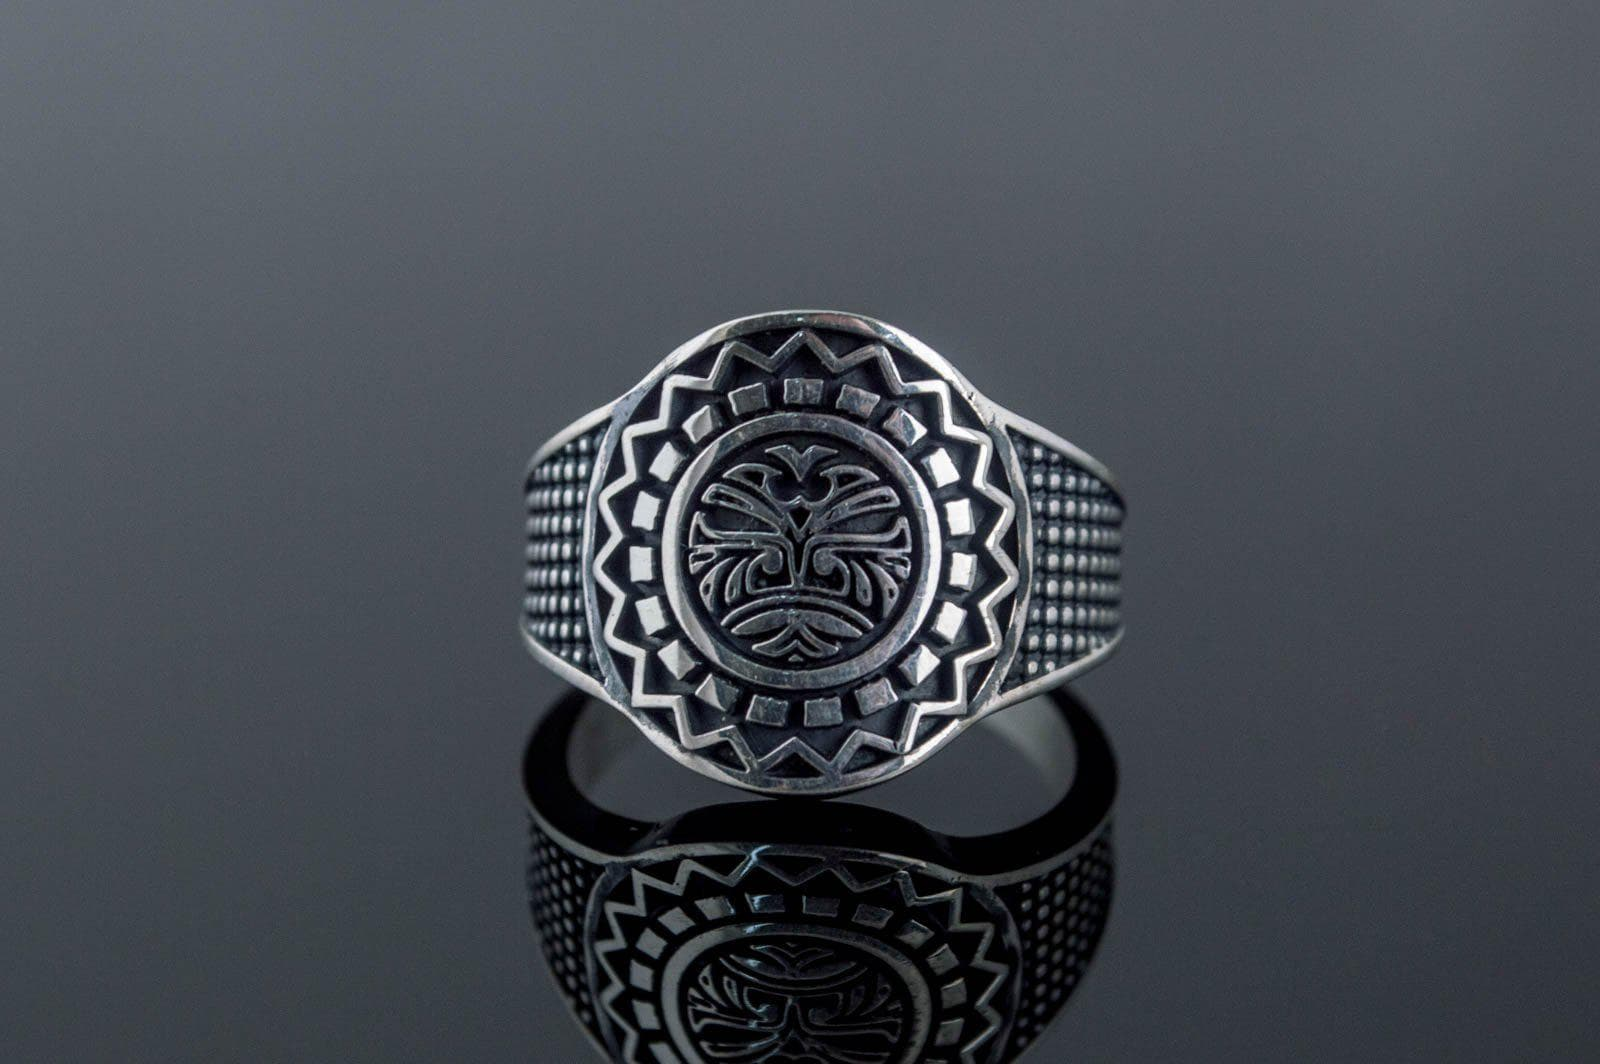 Rings Aztec Ornament Sterling Silver Handmade Ring Ancient Treasures Ancientreasures Viking Odin Thor Mjolnir Celtic Ancient Egypt Norse Norse Mythology